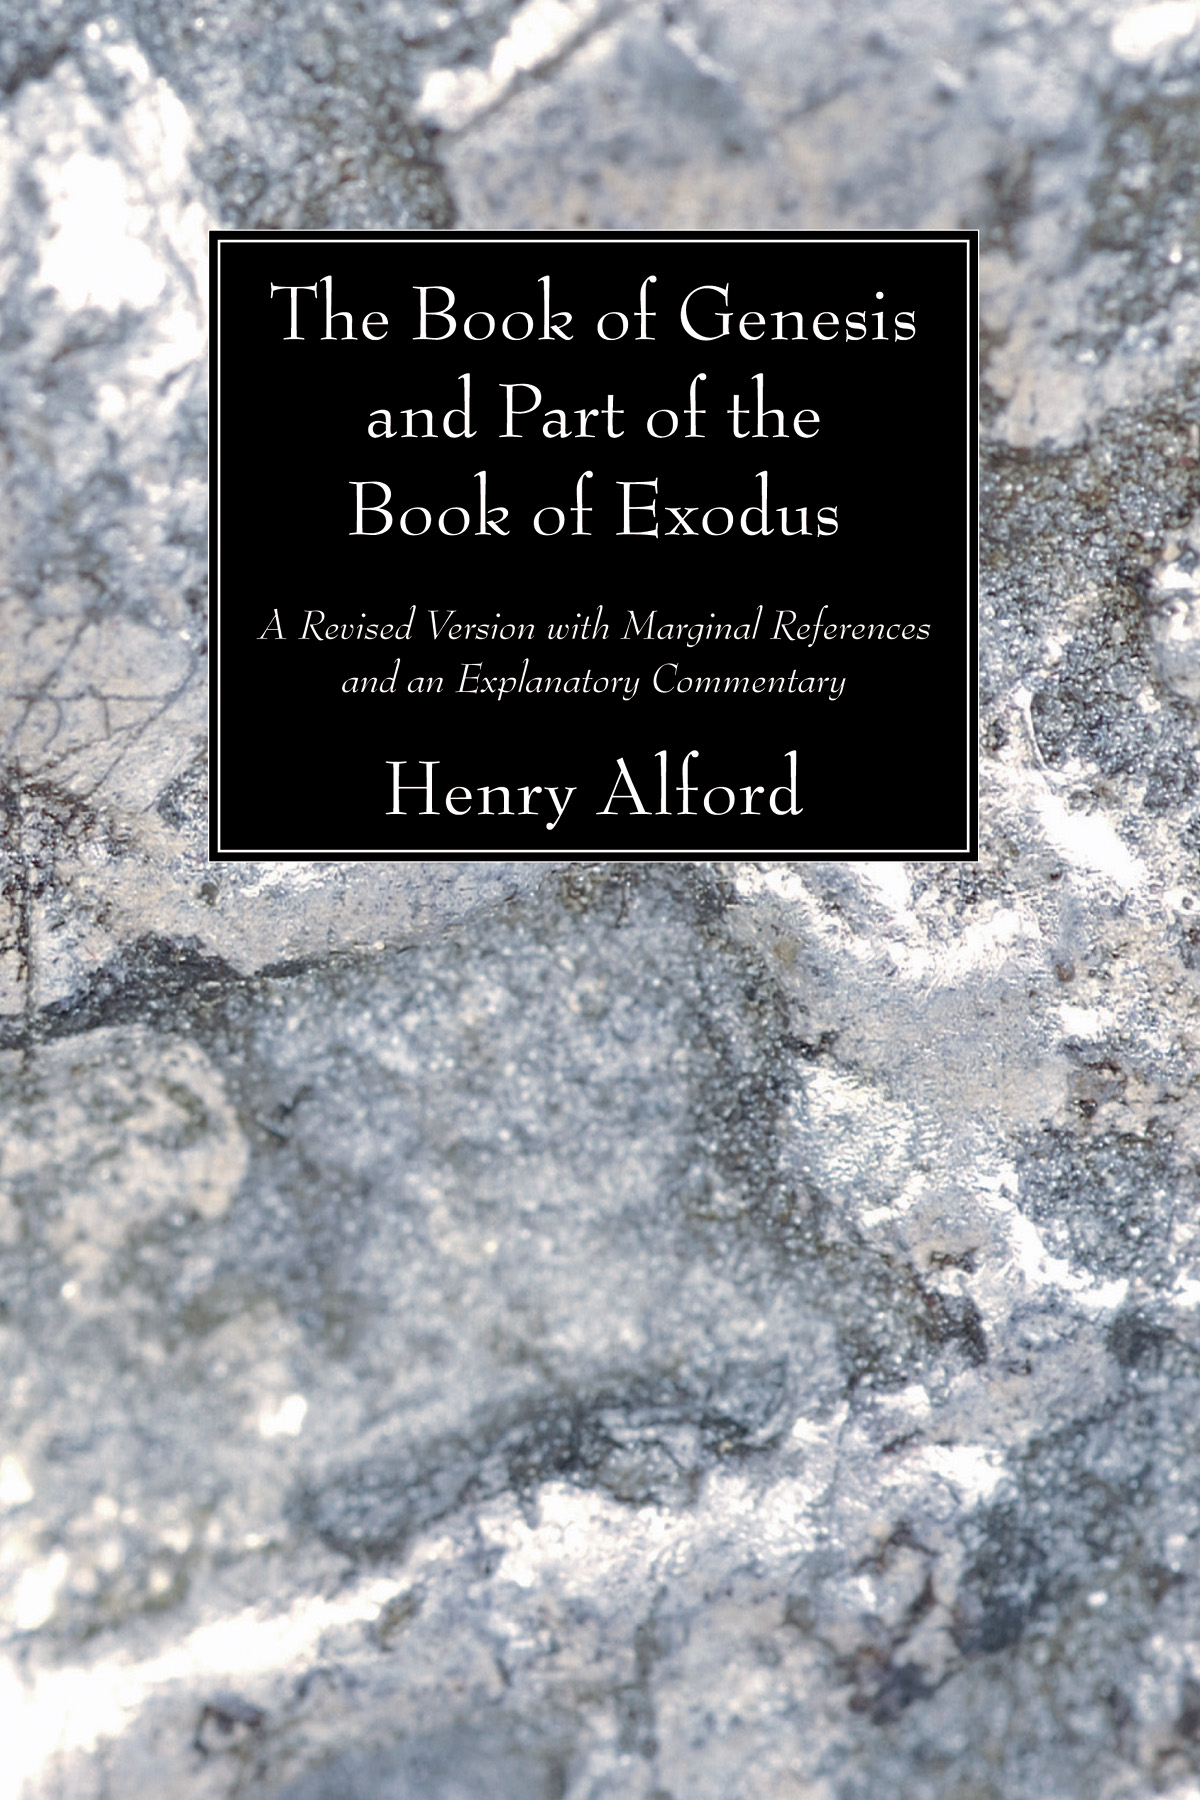 the role of violence in the book of genesis and exodus The levite authors also devote more ink in exodus, leviticus, and numbers to the tabernacle—the tent of meeting which held the ark in the exodus account—than they do to any other subject the non-levite text, j, doesn't mention it.